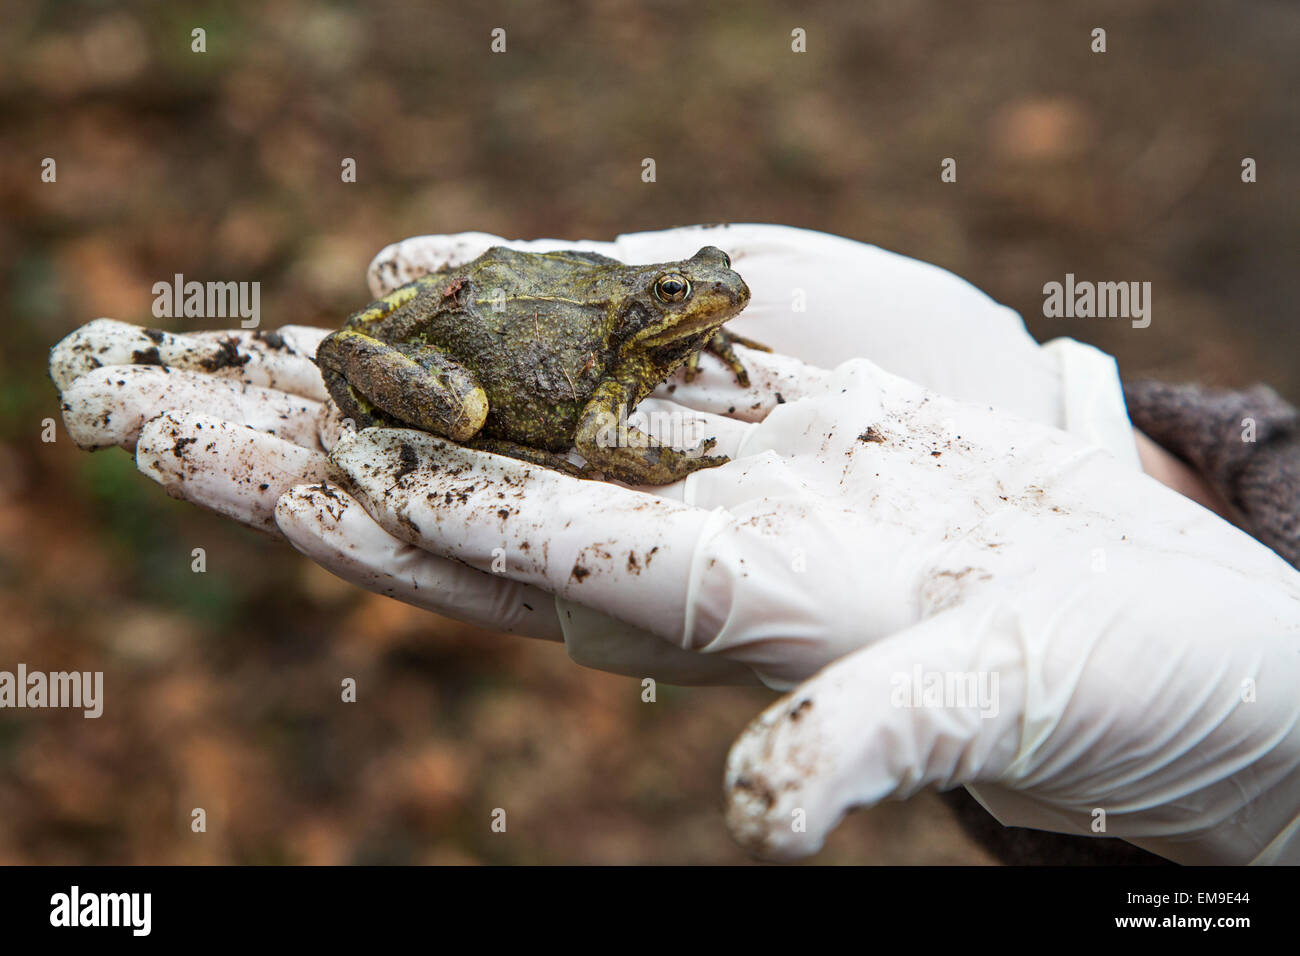 Person holding European common brown frog (Rana temporaria) in gloved hand - Stock Image